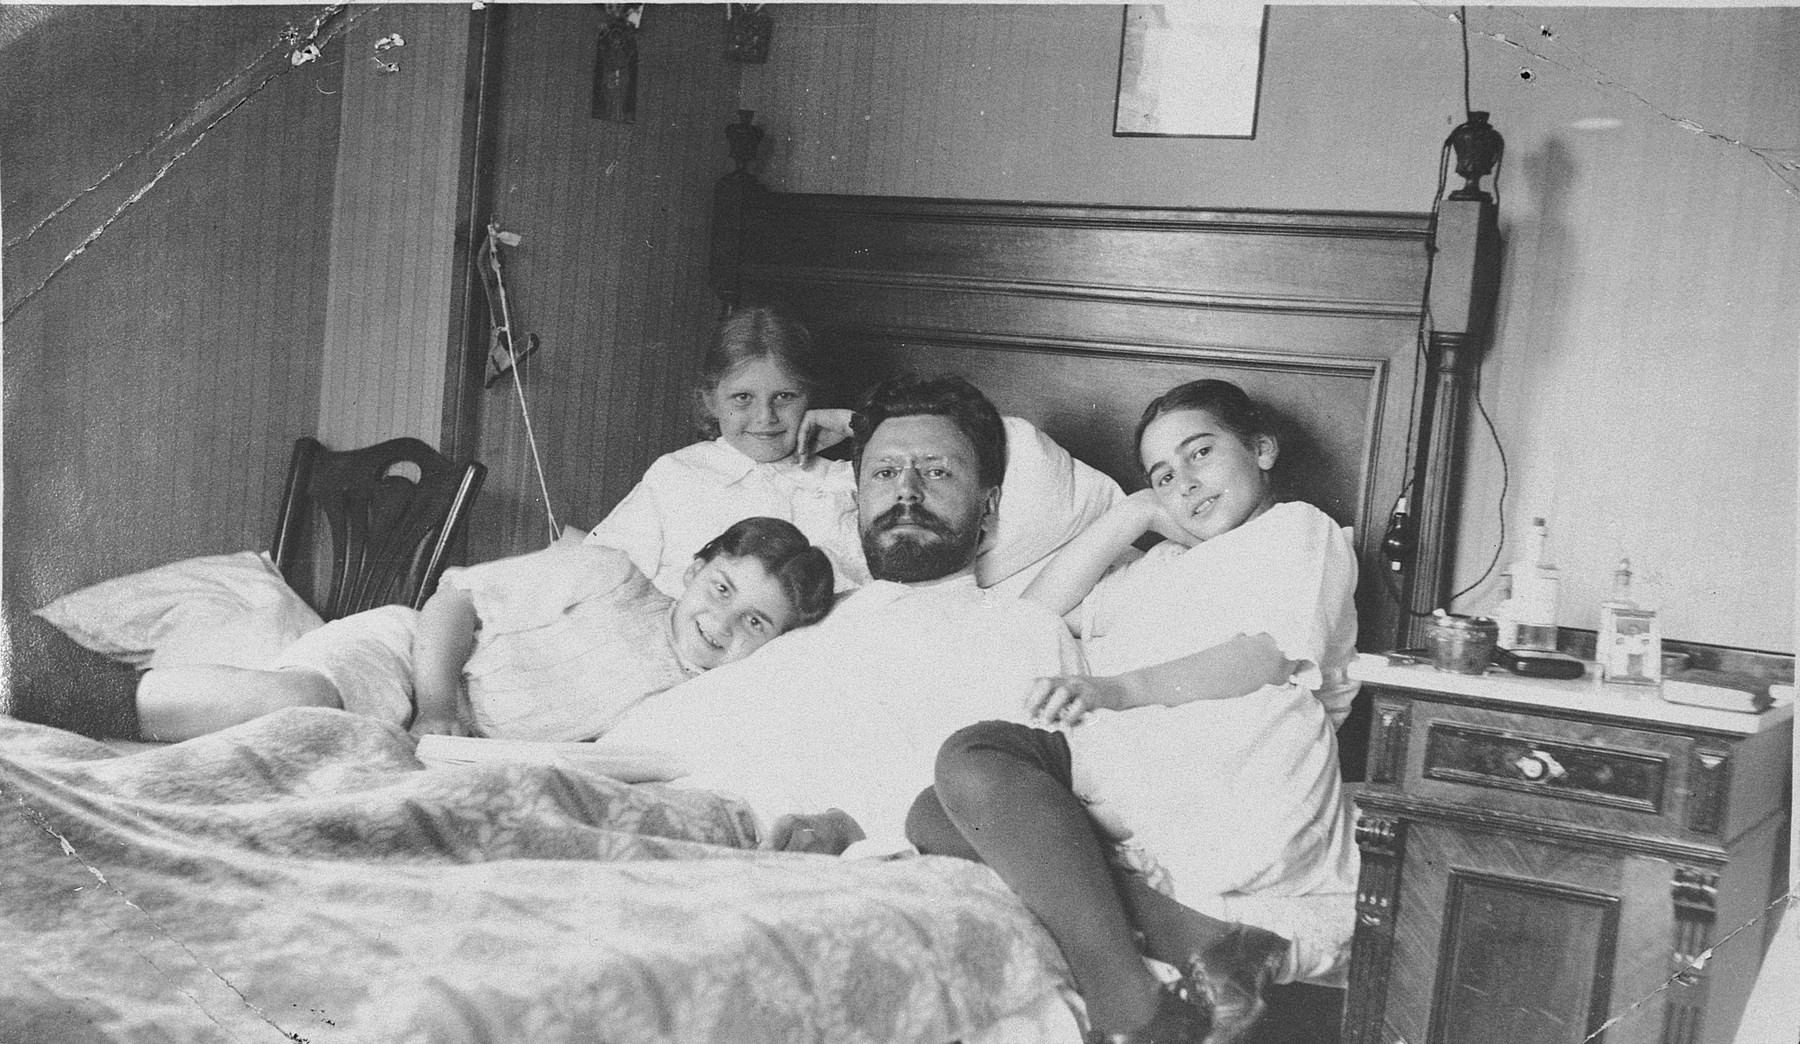 Sophie Libo's grandfather lies in bed surrounded by his daughter, Nina, and two nieces.